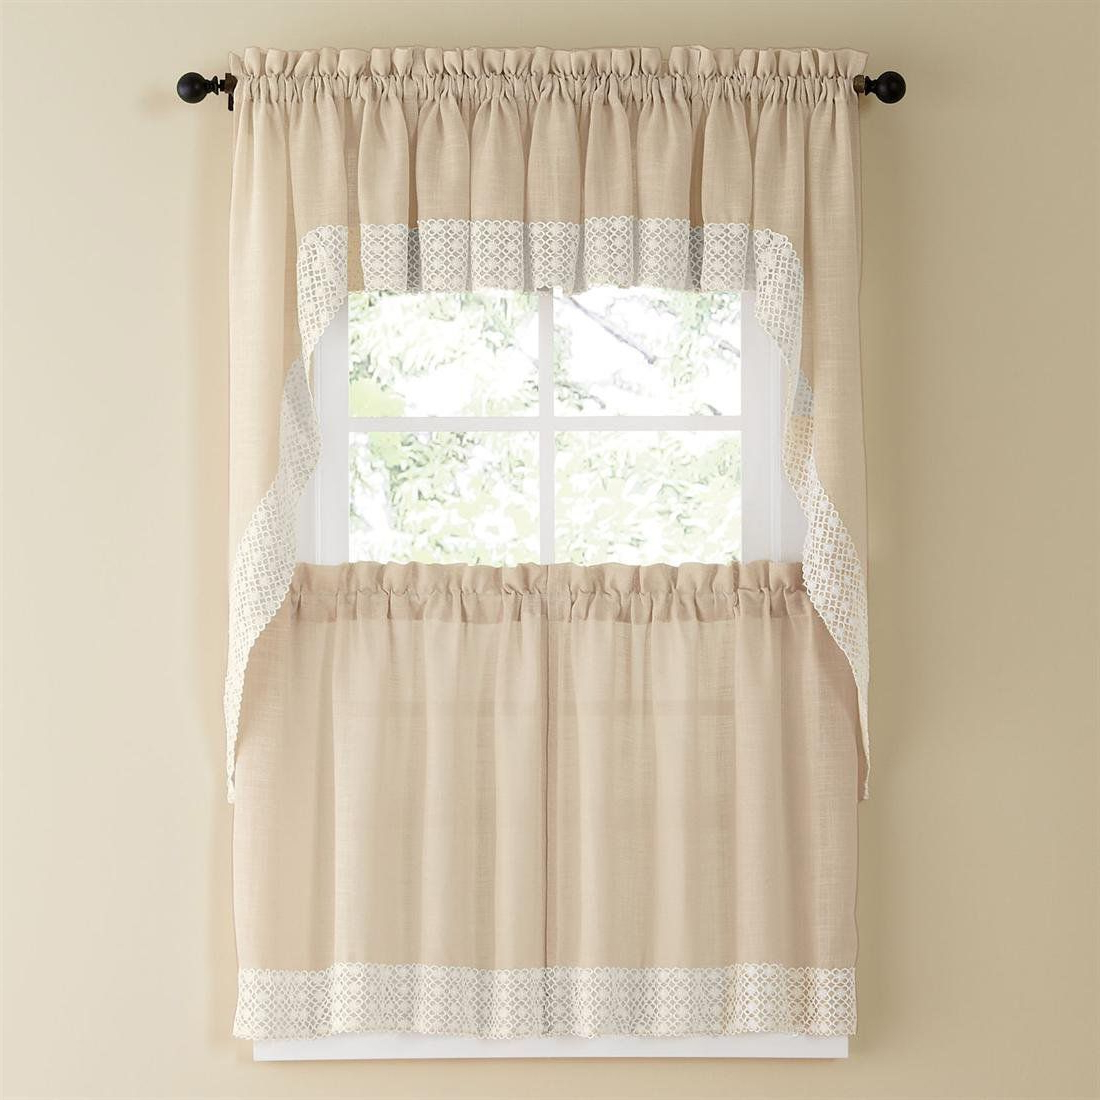 French Vanilla Country Style Curtain Parts With White Daisy Within Well Known Country Style Curtain Parts With White Daisy Lace Accent (Gallery 1 of 20)